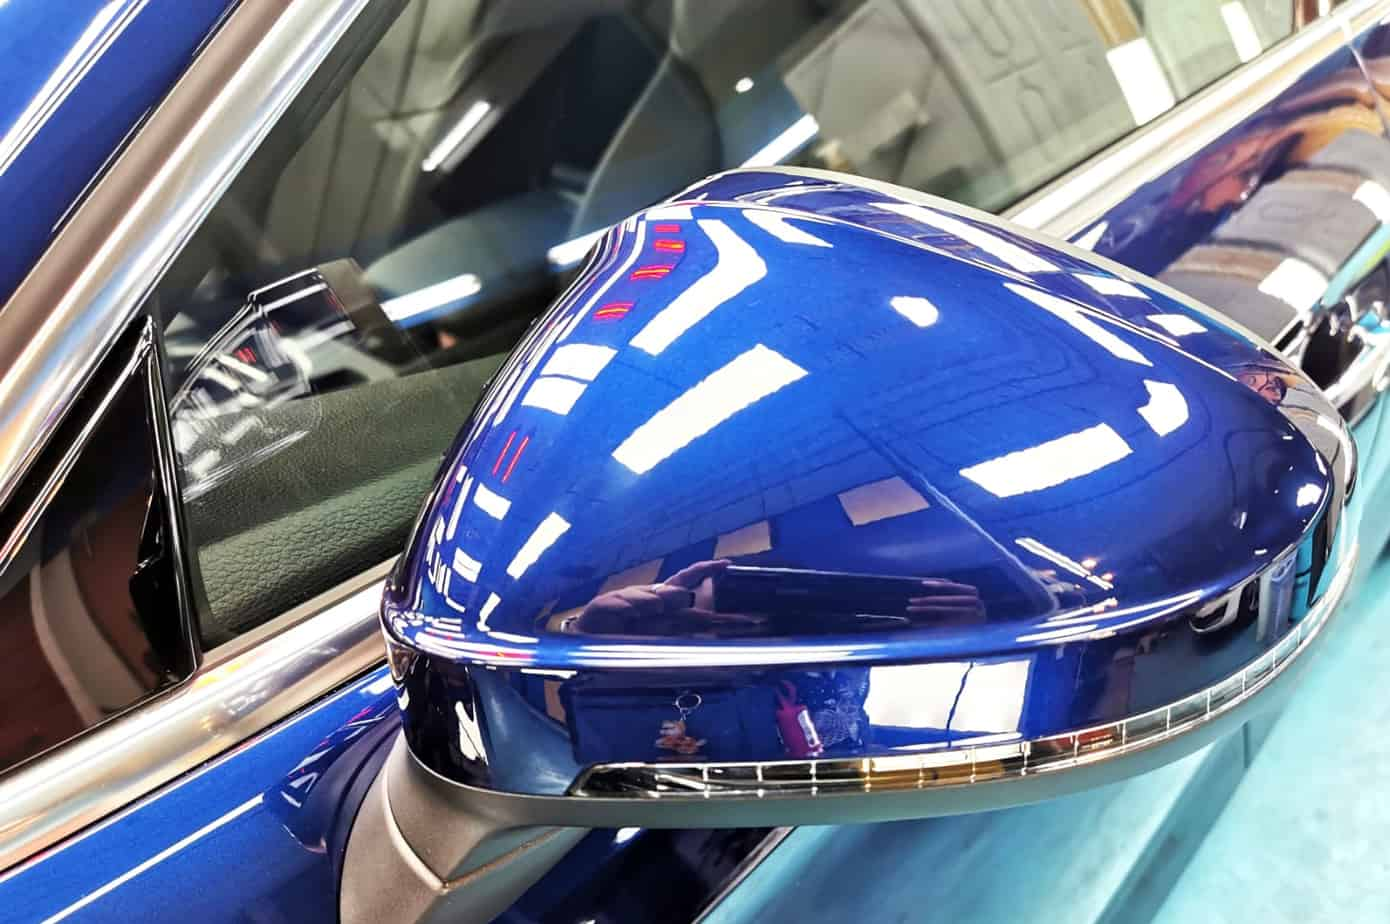 Stunning Blue Audi A5 - side mirror